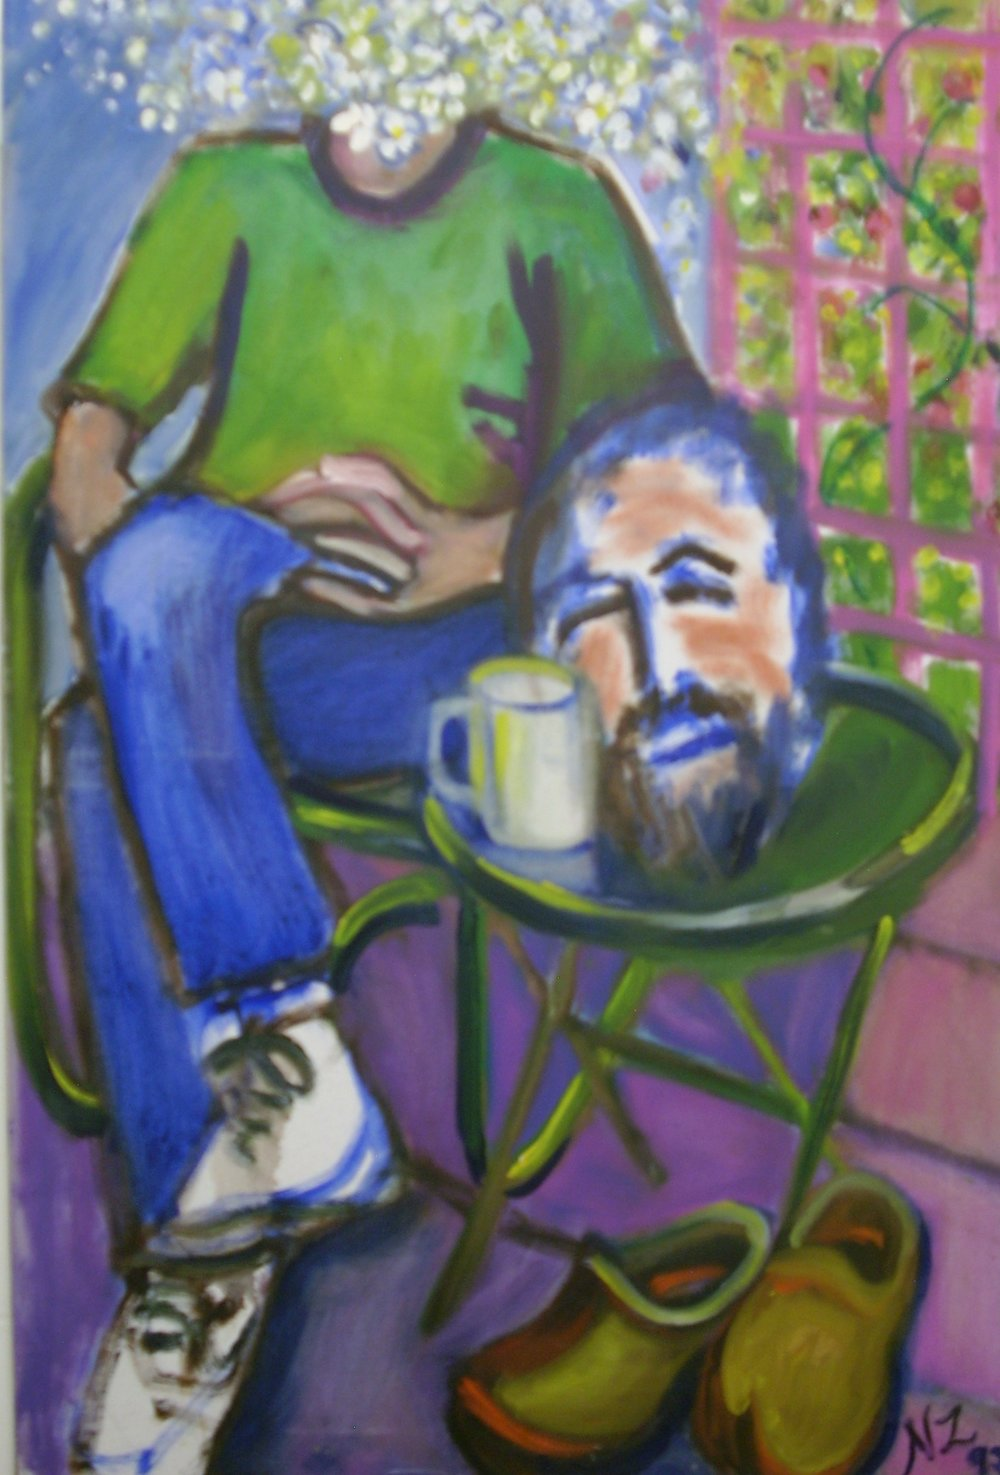 "Title: Good Coffee  Artist:  Noelle Zeltzman   Medium: Oil on Canvas  Dimensions: 36"" x 24""  Price: Please contact us directly for pricing"